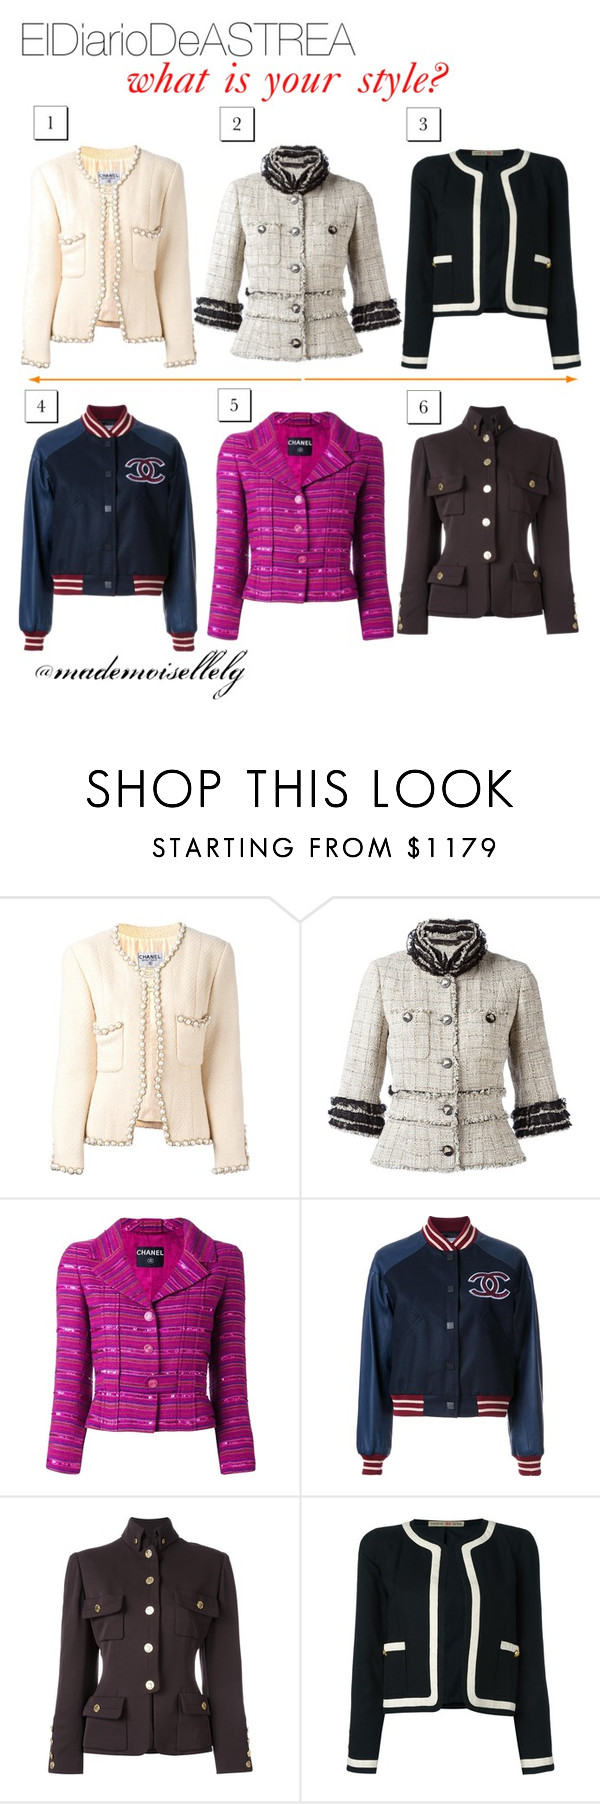 """""""I love Chanel"""" by madmuasel21 on Polyvore featuring moda, Chanel, ElDiarioDeASTREA y mademoisellelg"""